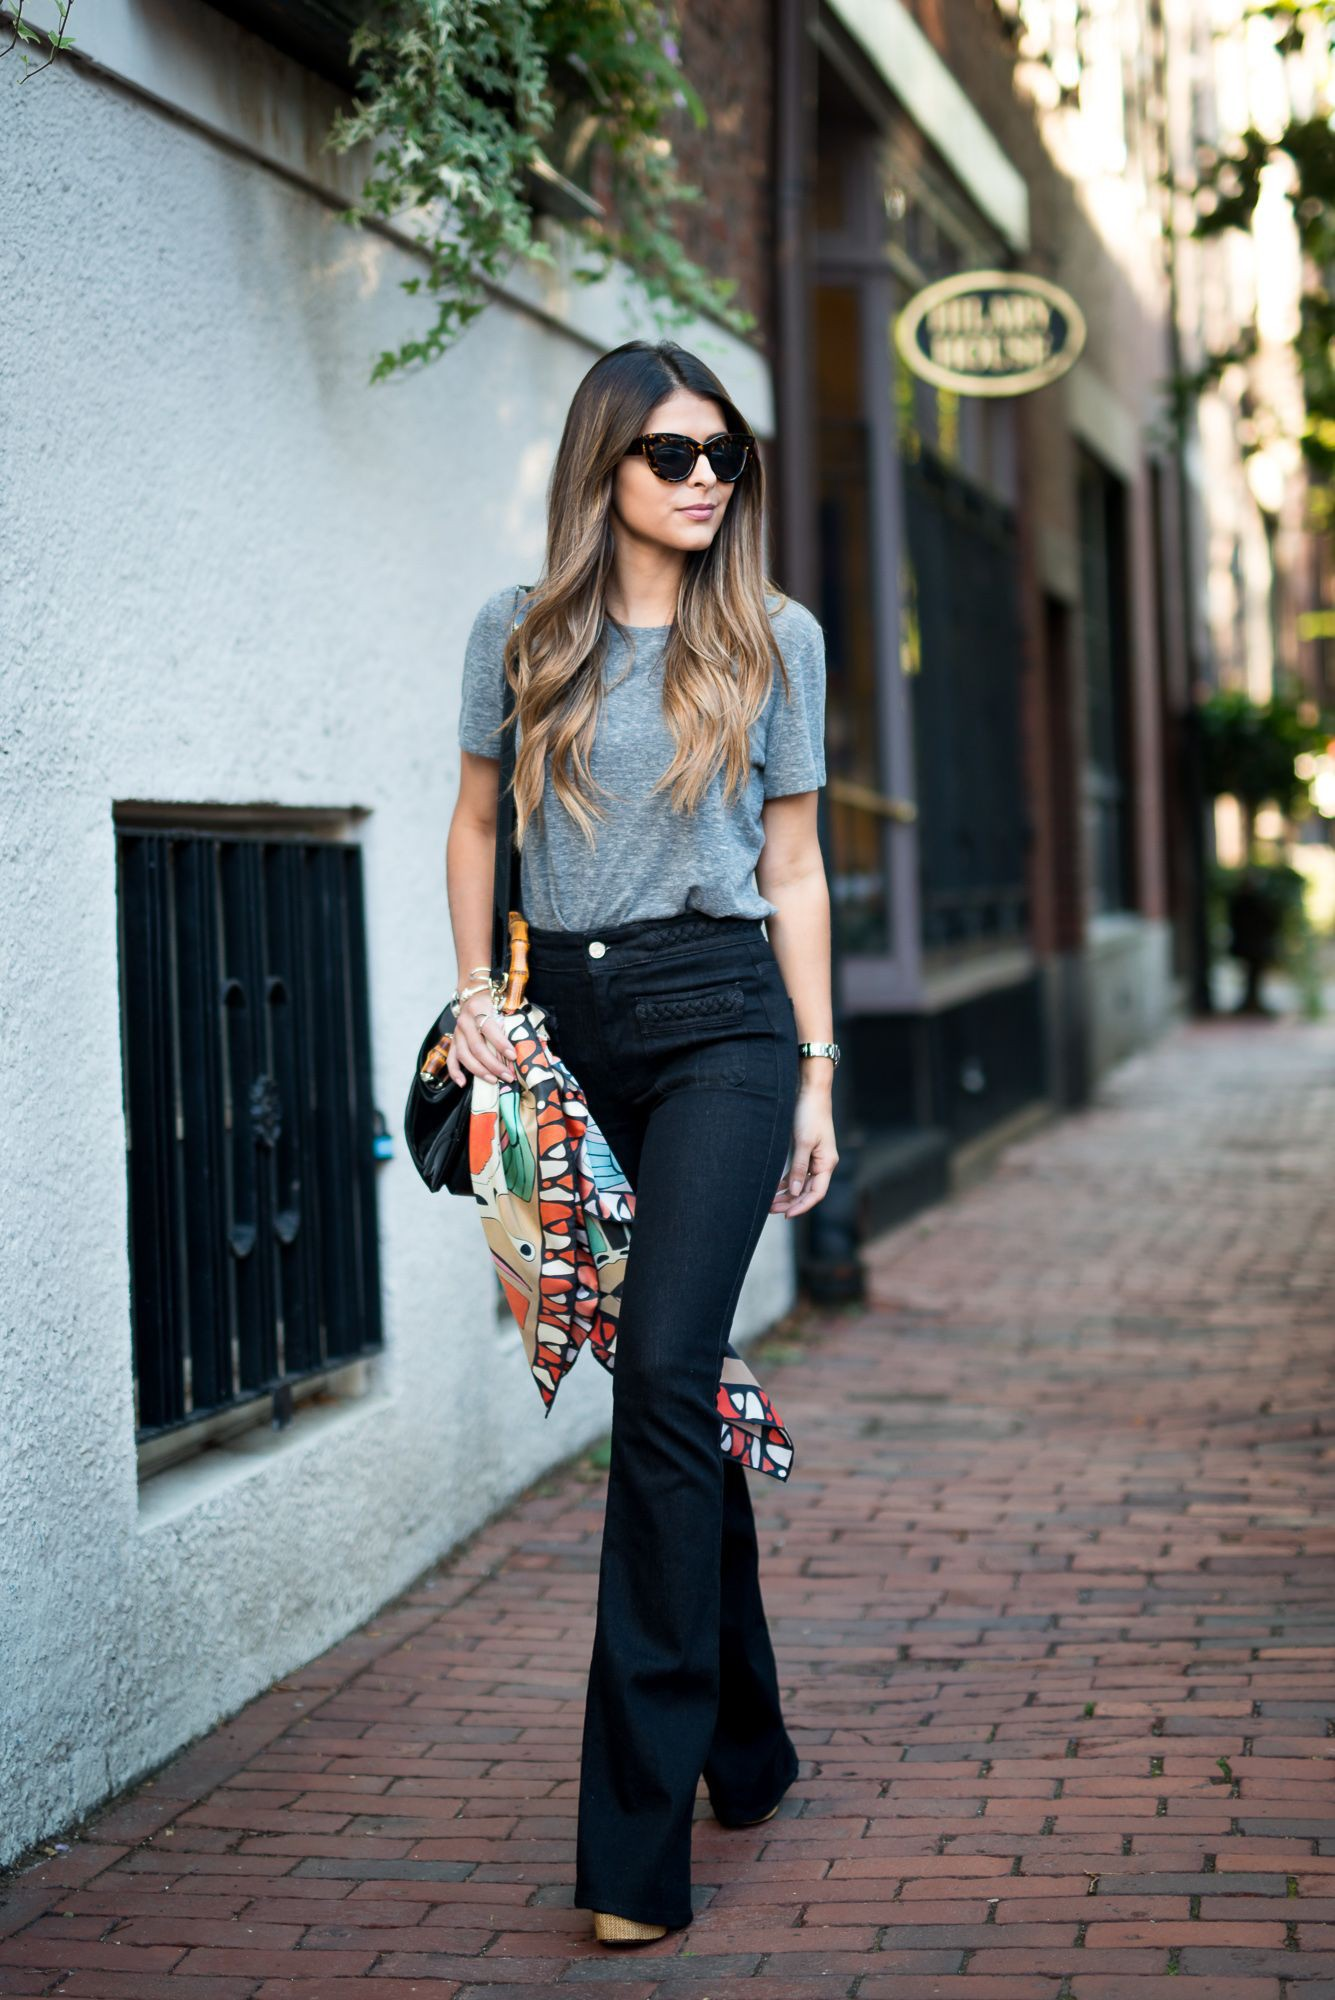 Black flared jeans outfit, Casual wear